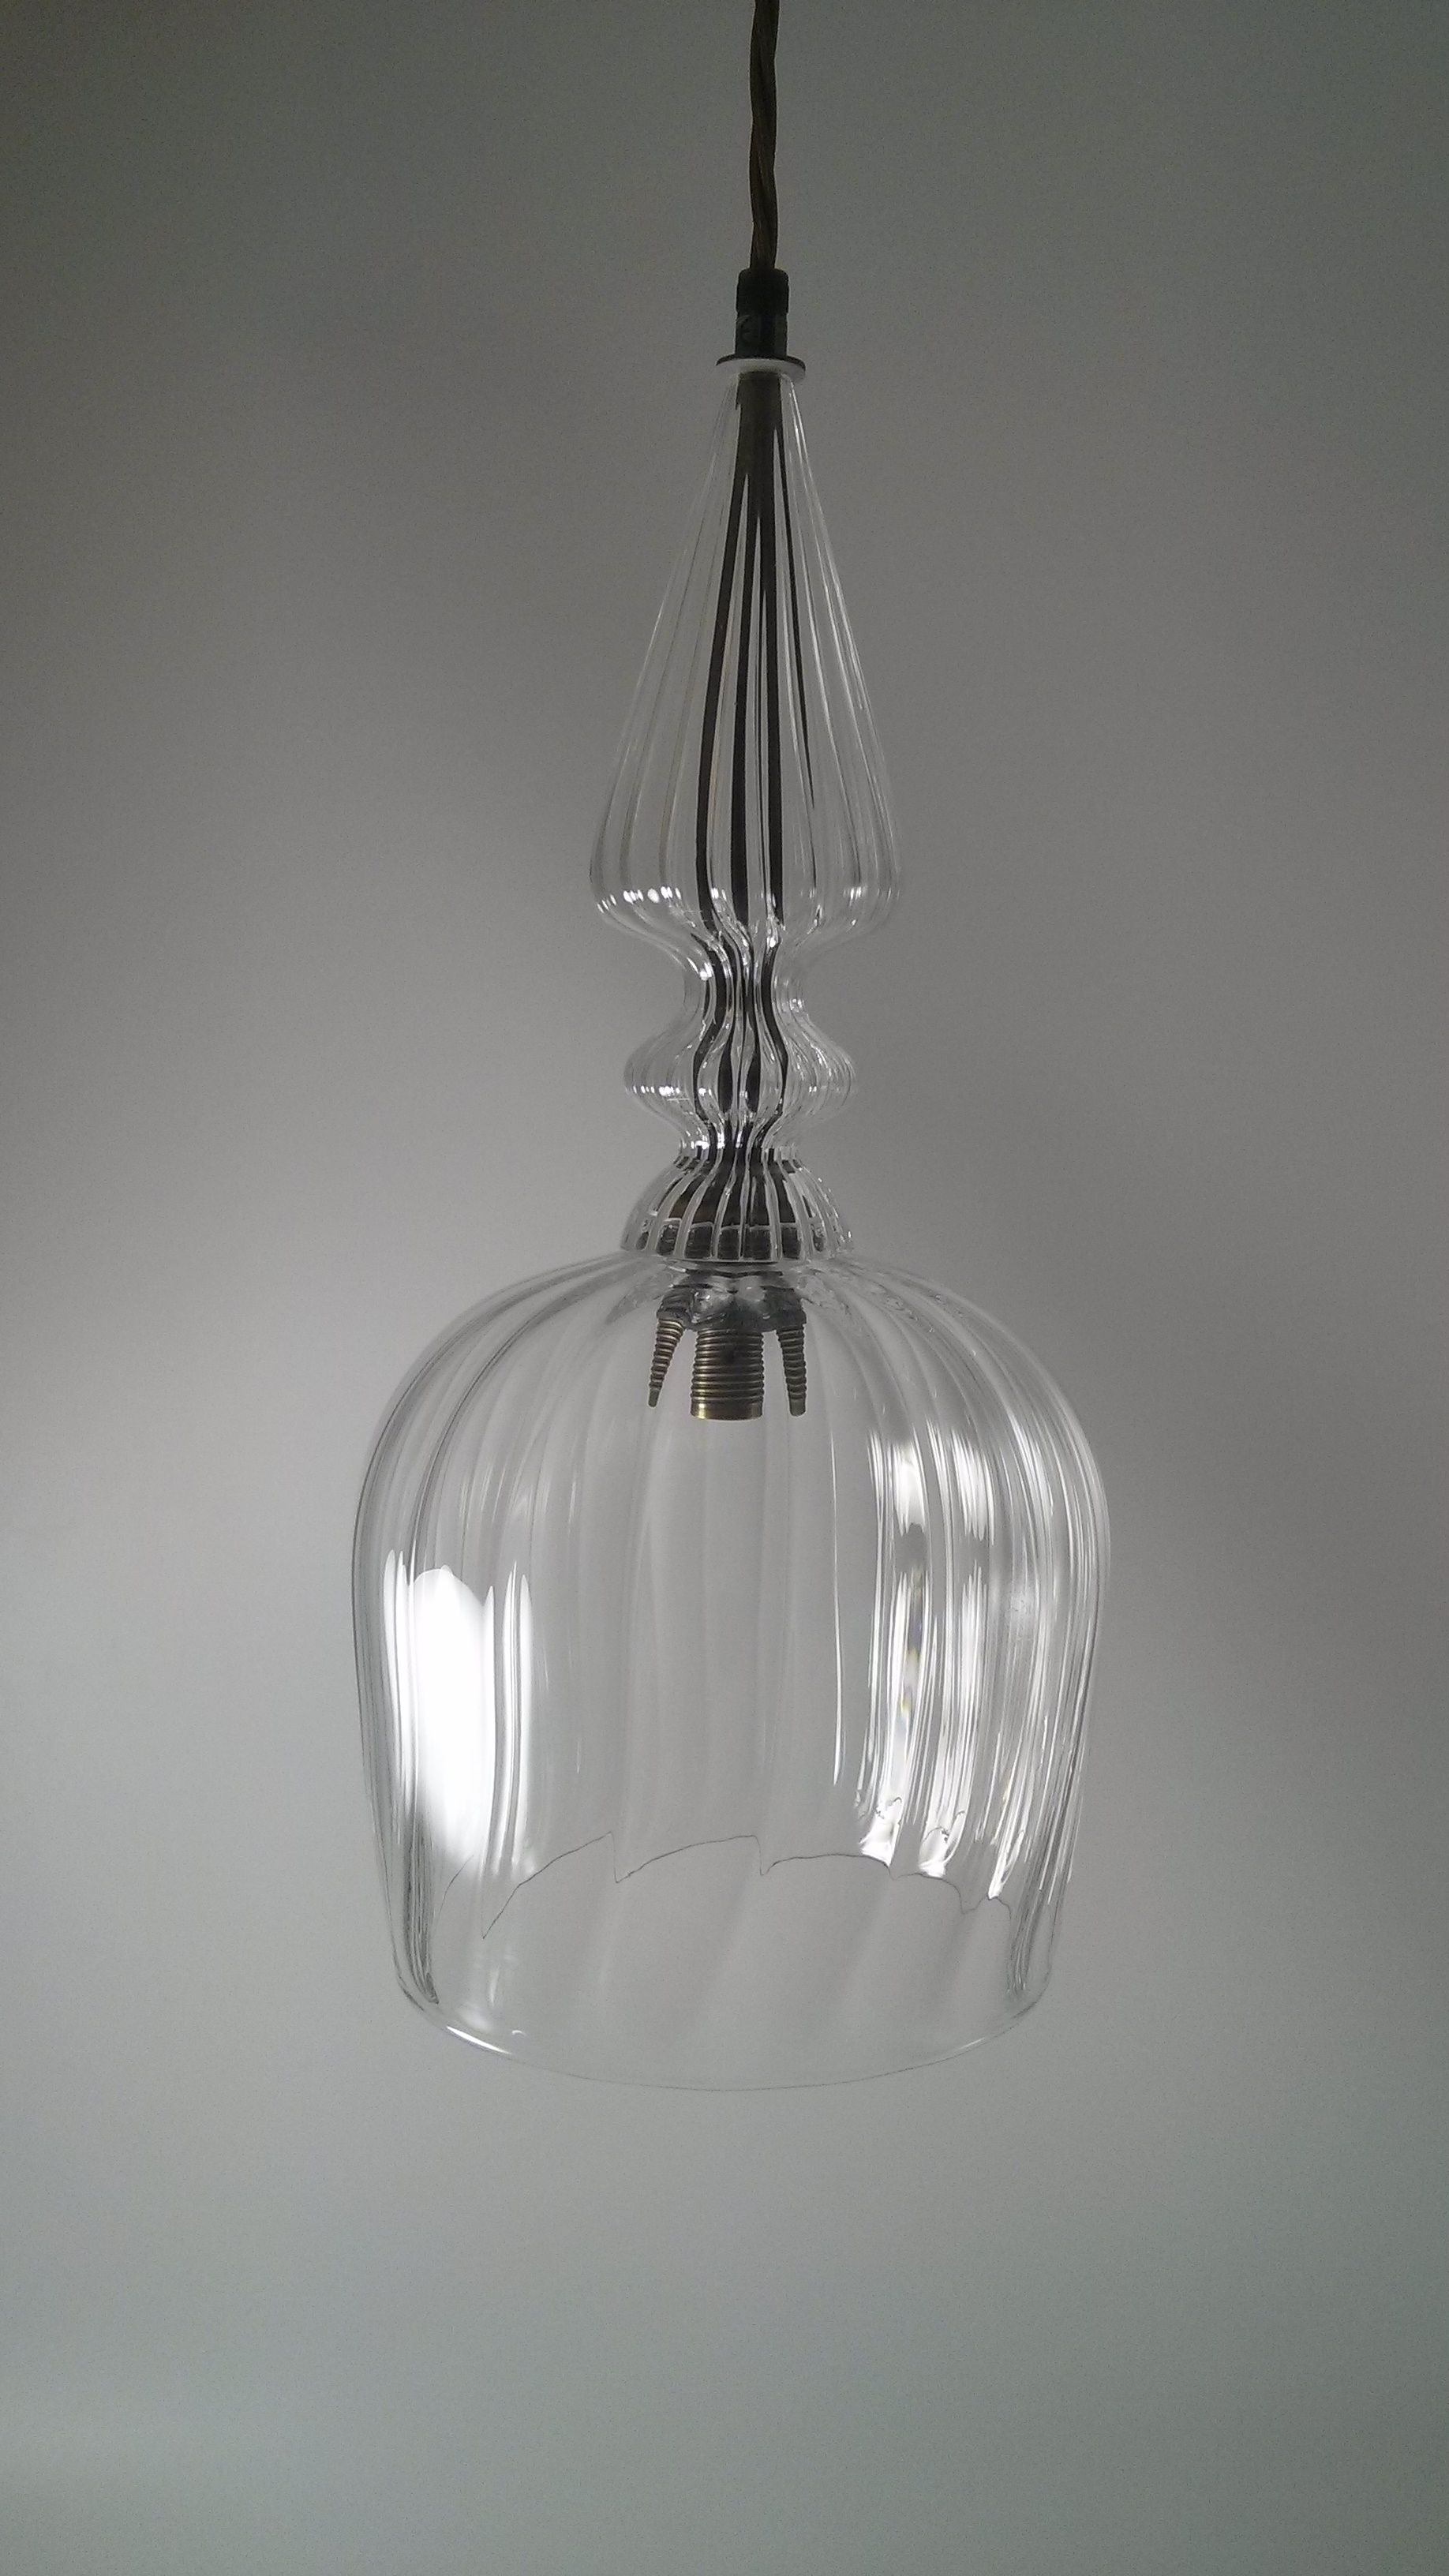 Spindle Shade in 2020 Simple pendant light, Rope pendant